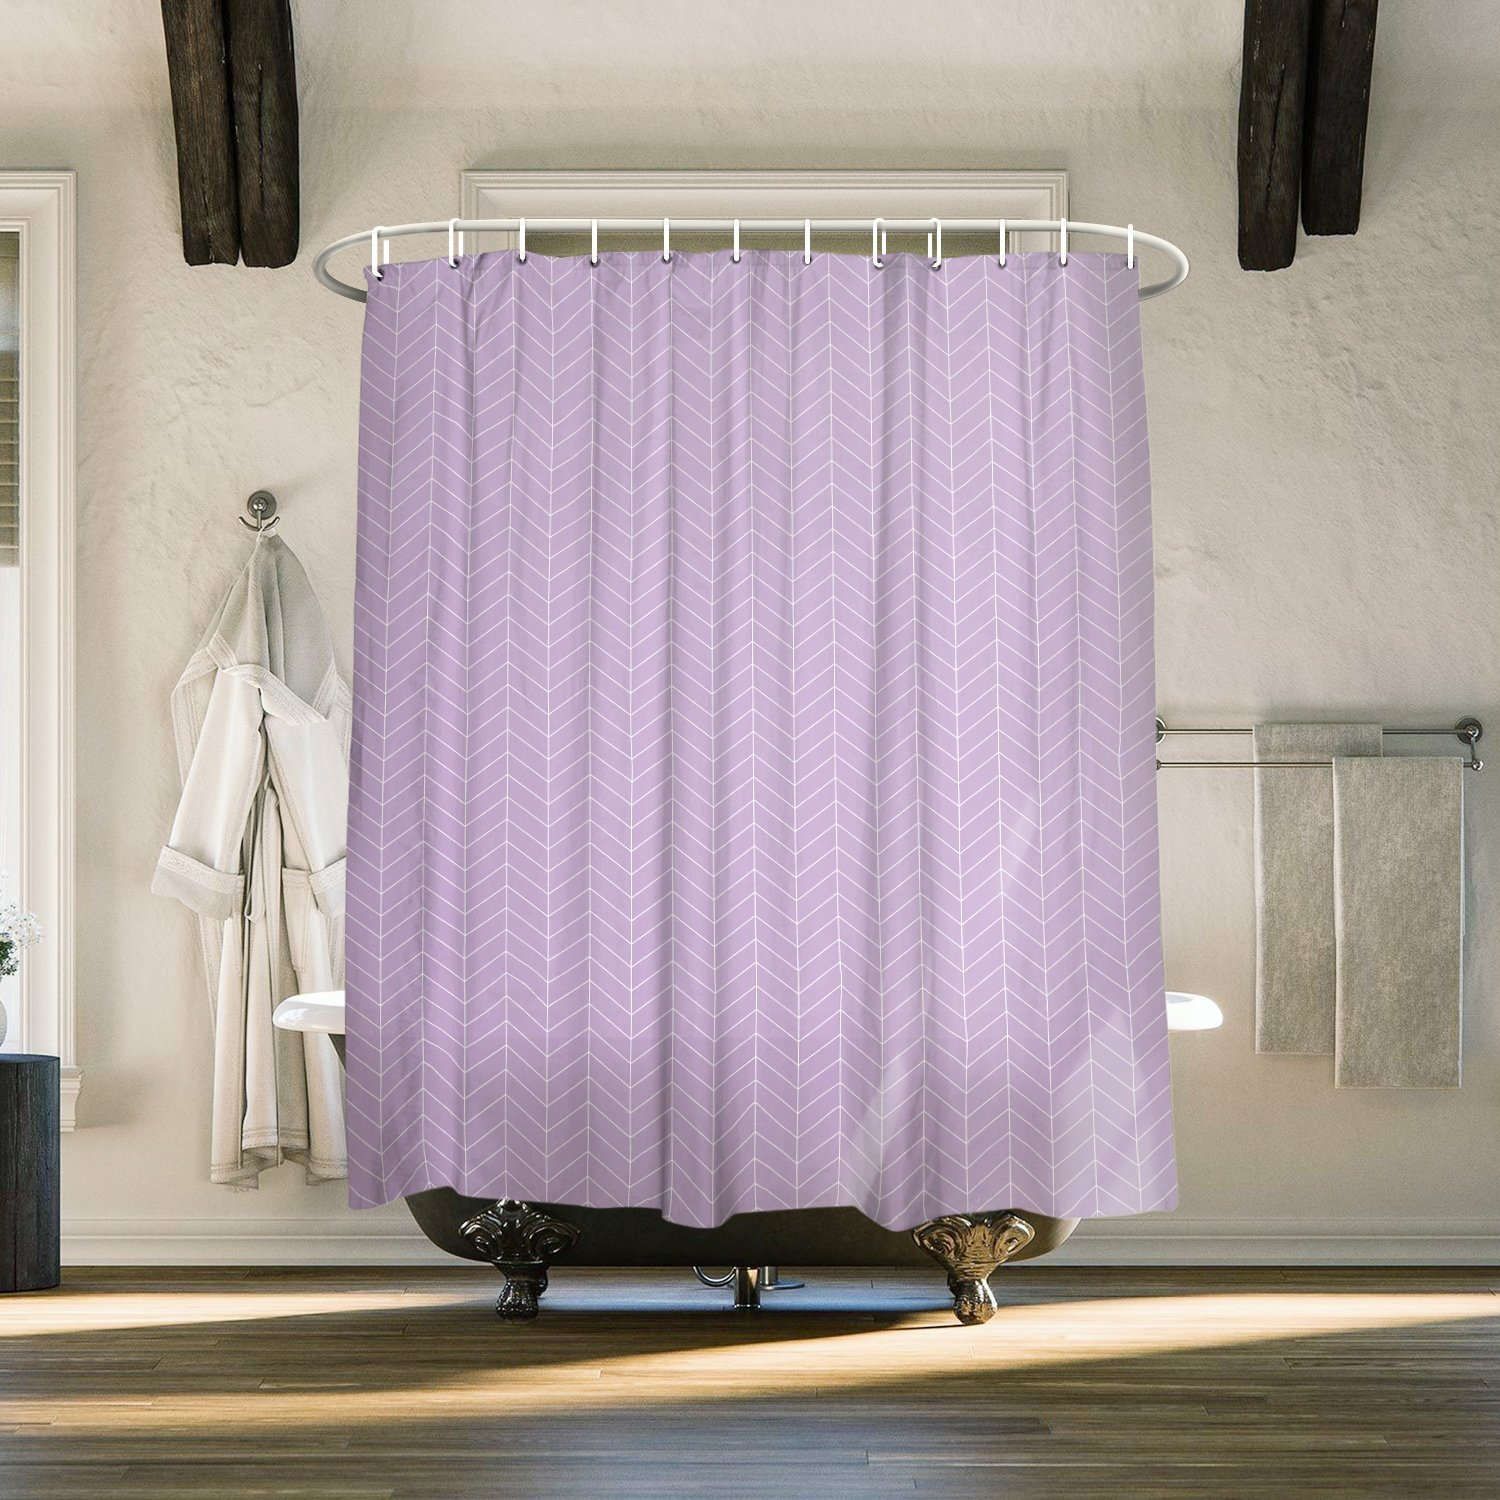 Us 18 6 31 Off Grey Stripe Natural Herringbone 84 Inch Extra Long Shower Curtains Fabric Polyester Bathroom With Hooks In